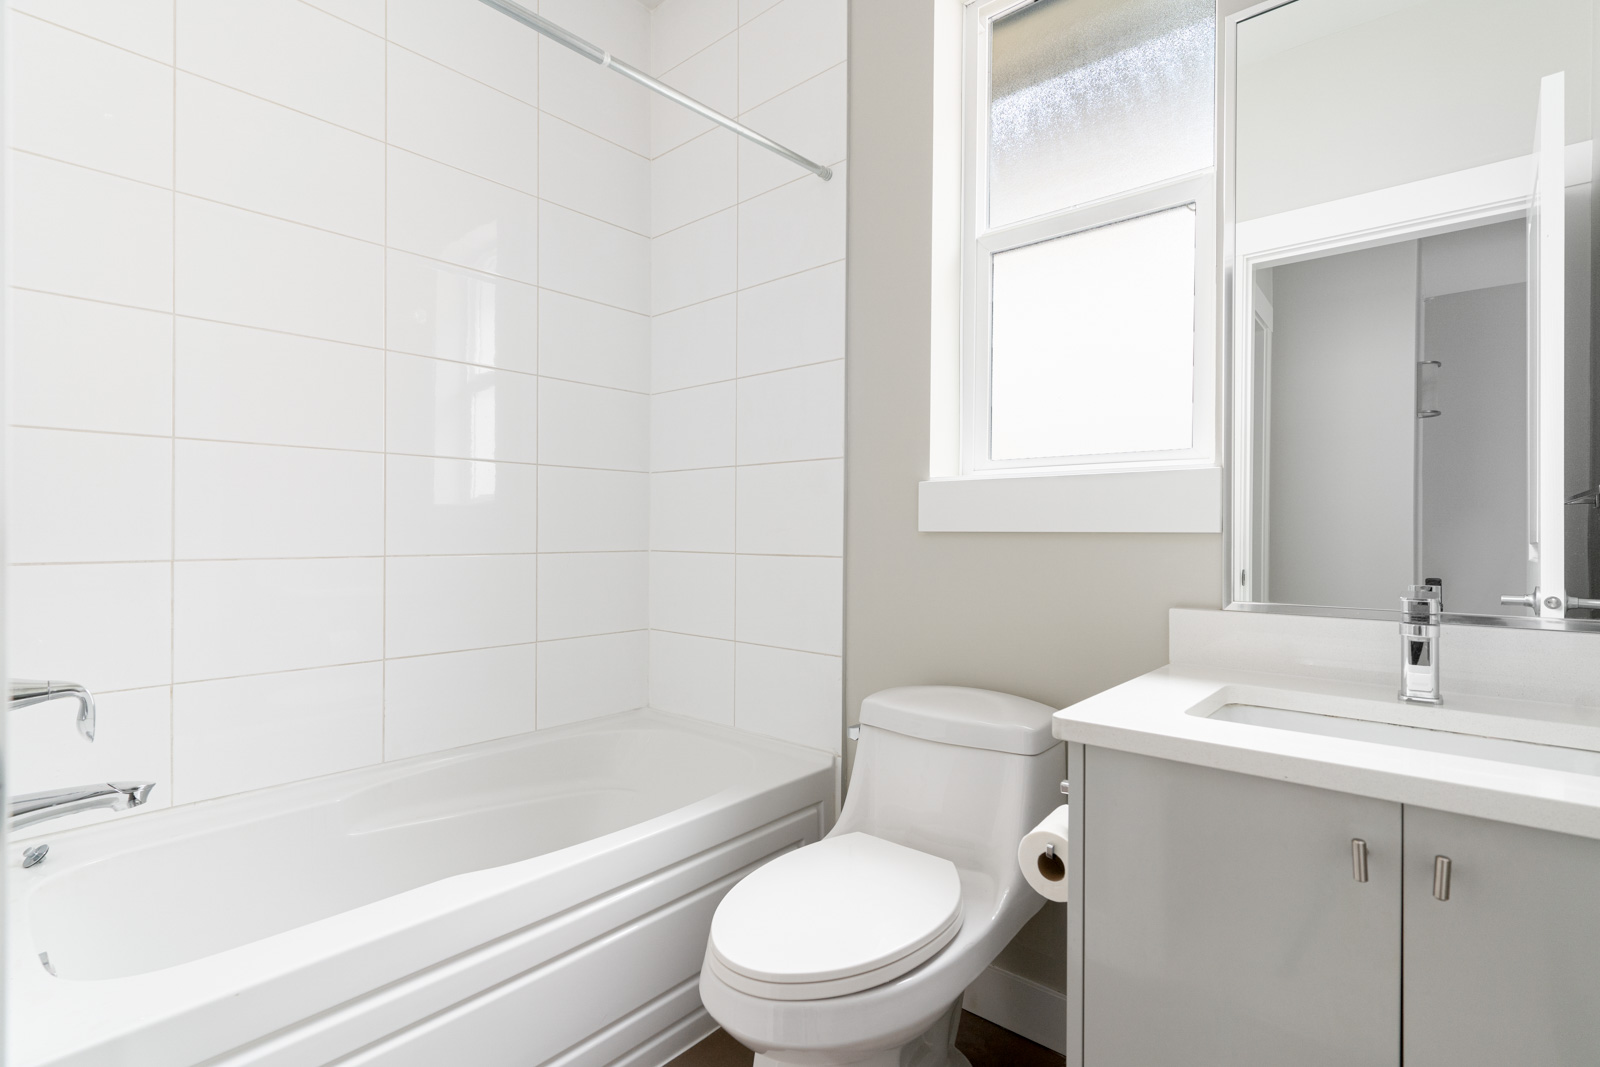 White/grey bathroom with bathtub / shower combination and toilet